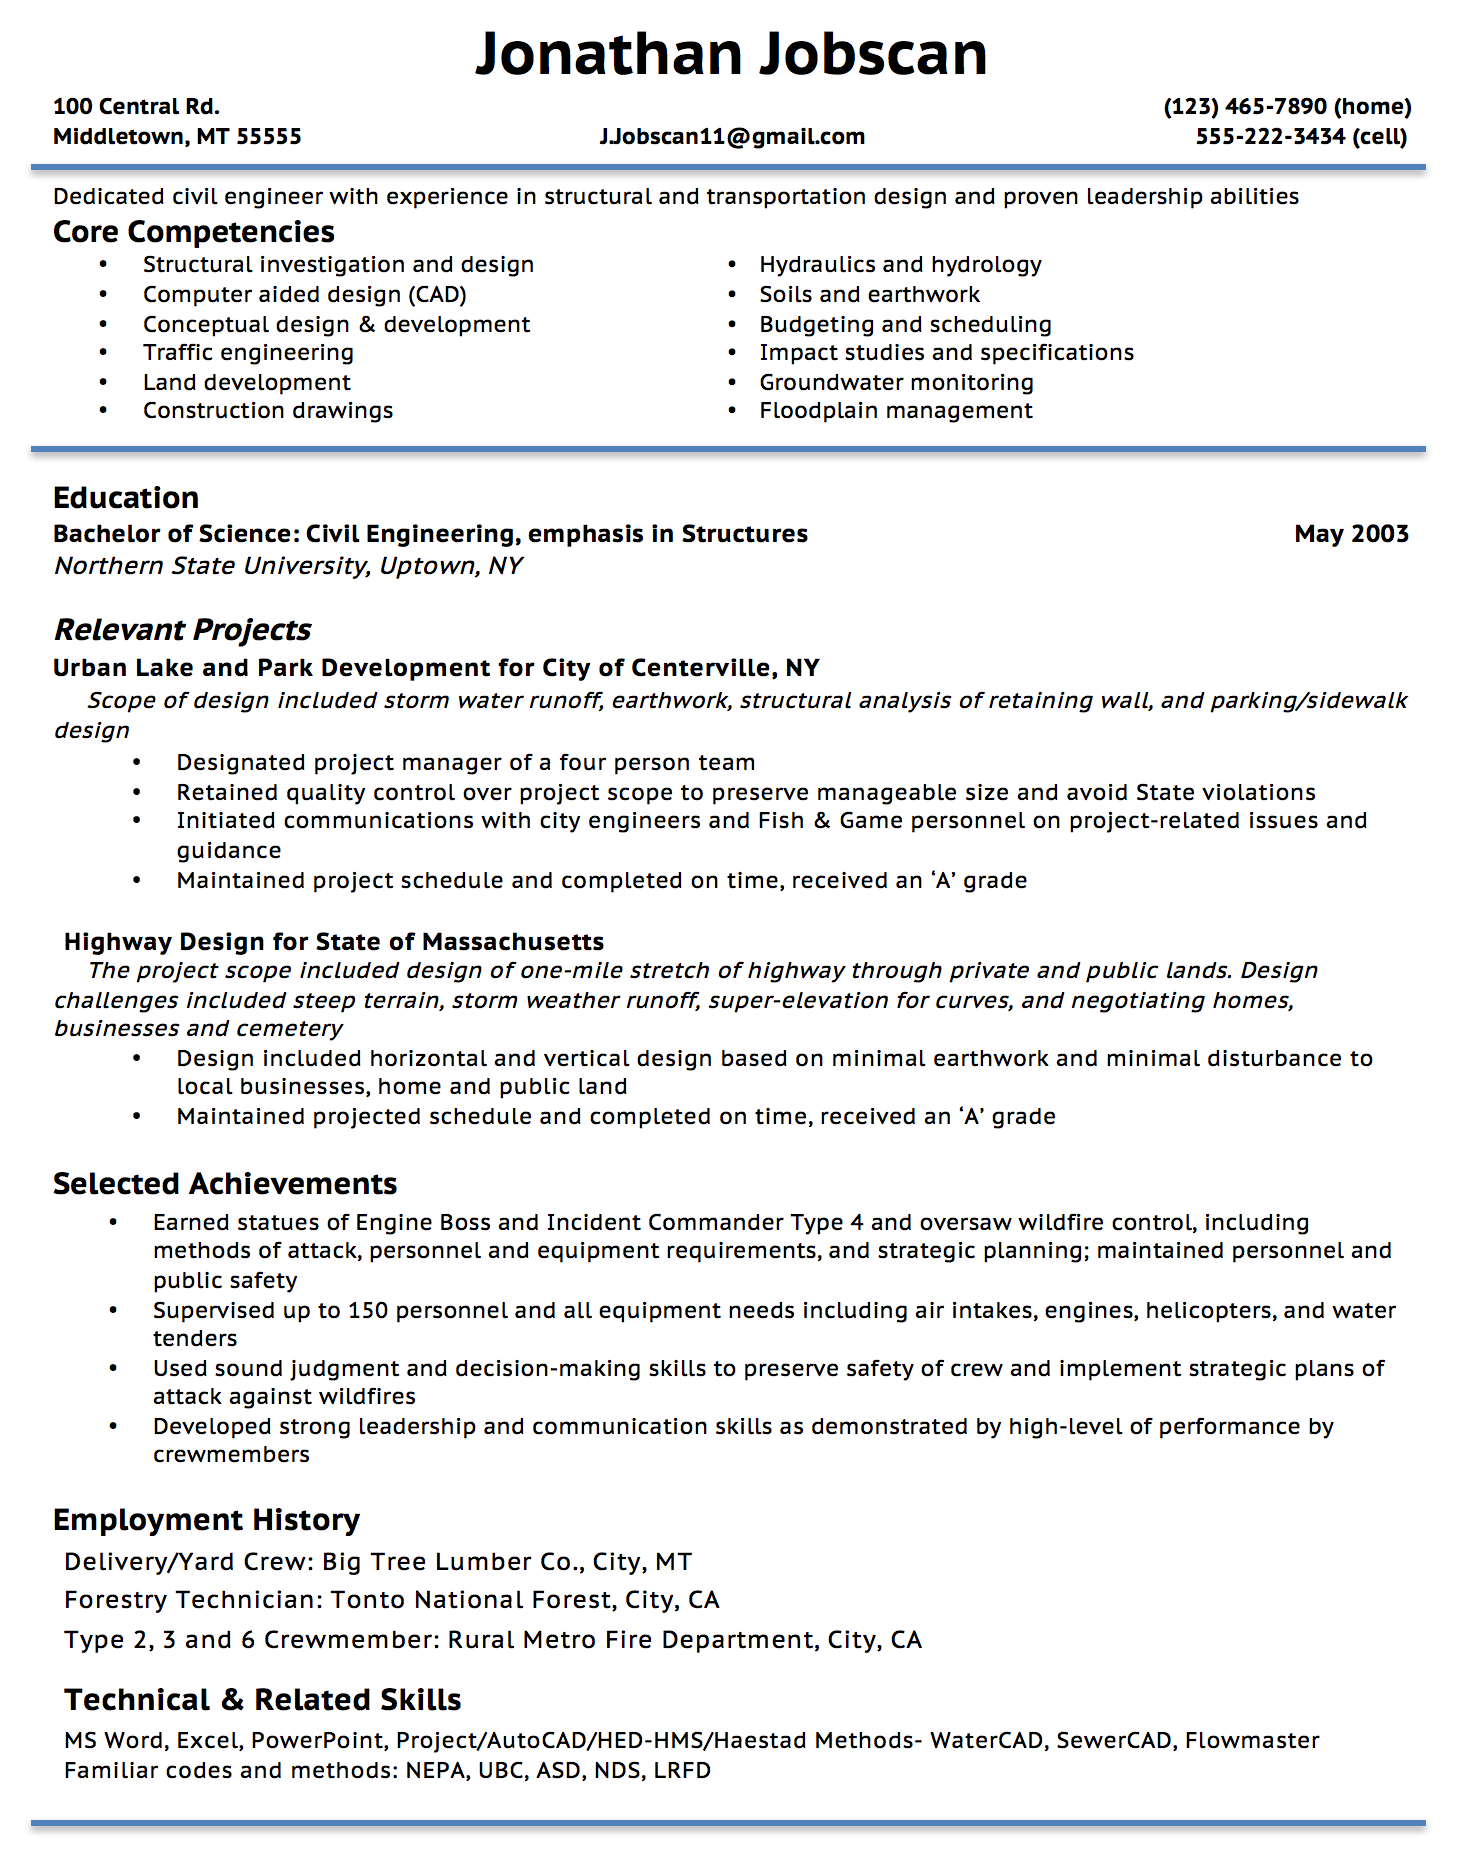 Opposenewapstandardsus  Splendid Resume Writing Guide  Jobscan With Lovely Example Of A Functional Resume Format With Awesome Free Resume Template Download For Word Also Lpn Resume Objective In Addition Speech Pathology Resume And Optimal Resume Wyotech As Well As Marketing Intern Resume Additionally Free Simple Resume Templates From Jobscanco With Opposenewapstandardsus  Lovely Resume Writing Guide  Jobscan With Awesome Example Of A Functional Resume Format And Splendid Free Resume Template Download For Word Also Lpn Resume Objective In Addition Speech Pathology Resume From Jobscanco